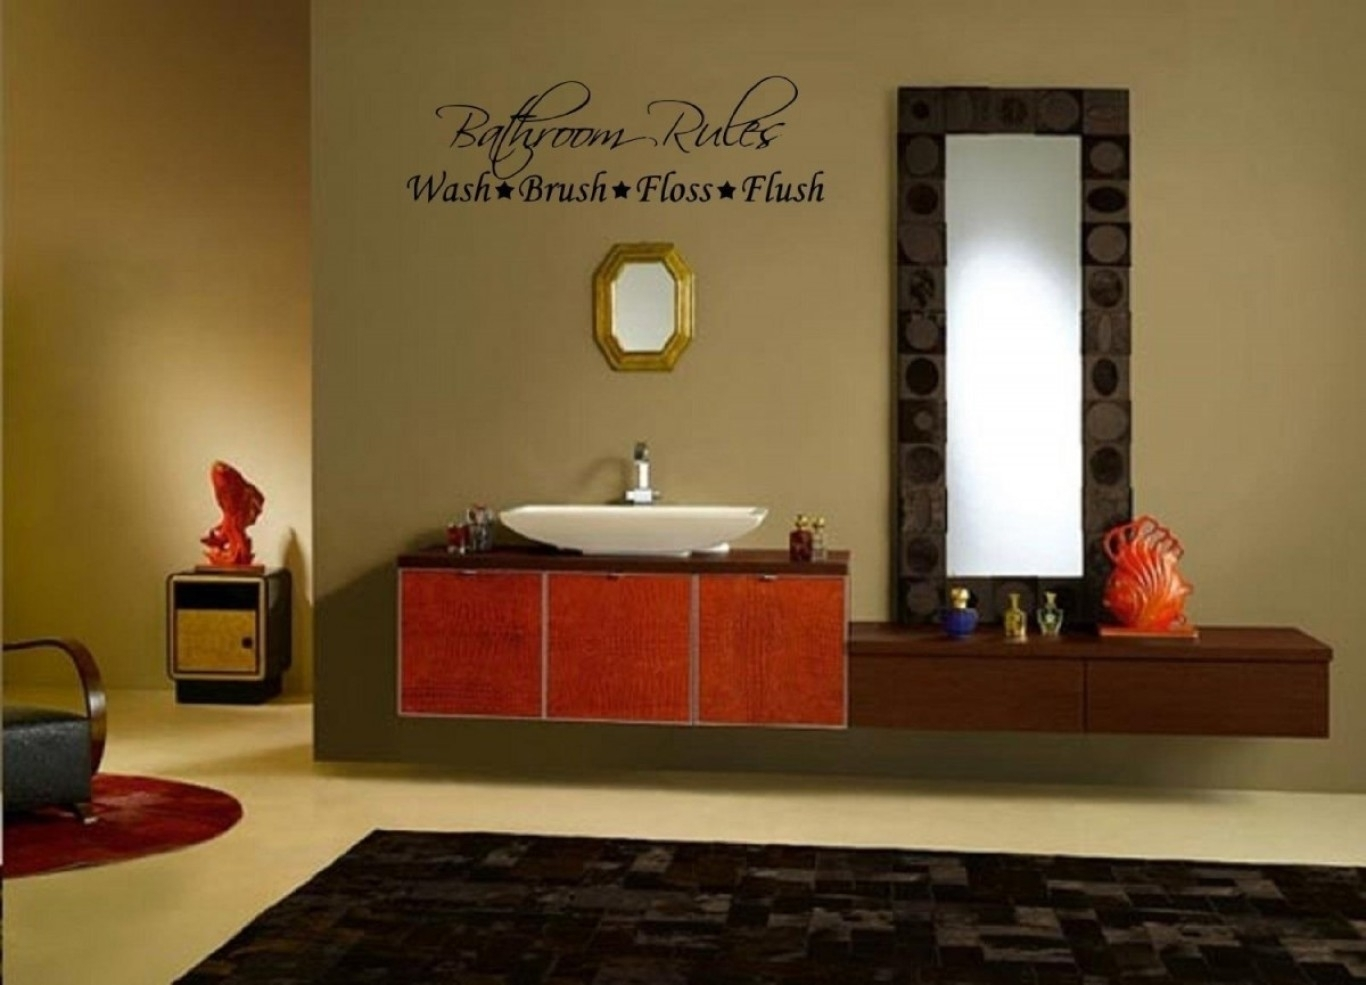 Bathroom Wall Decor With Regard To 2018 Wall Accents For Bathroom (View 4 of 15)